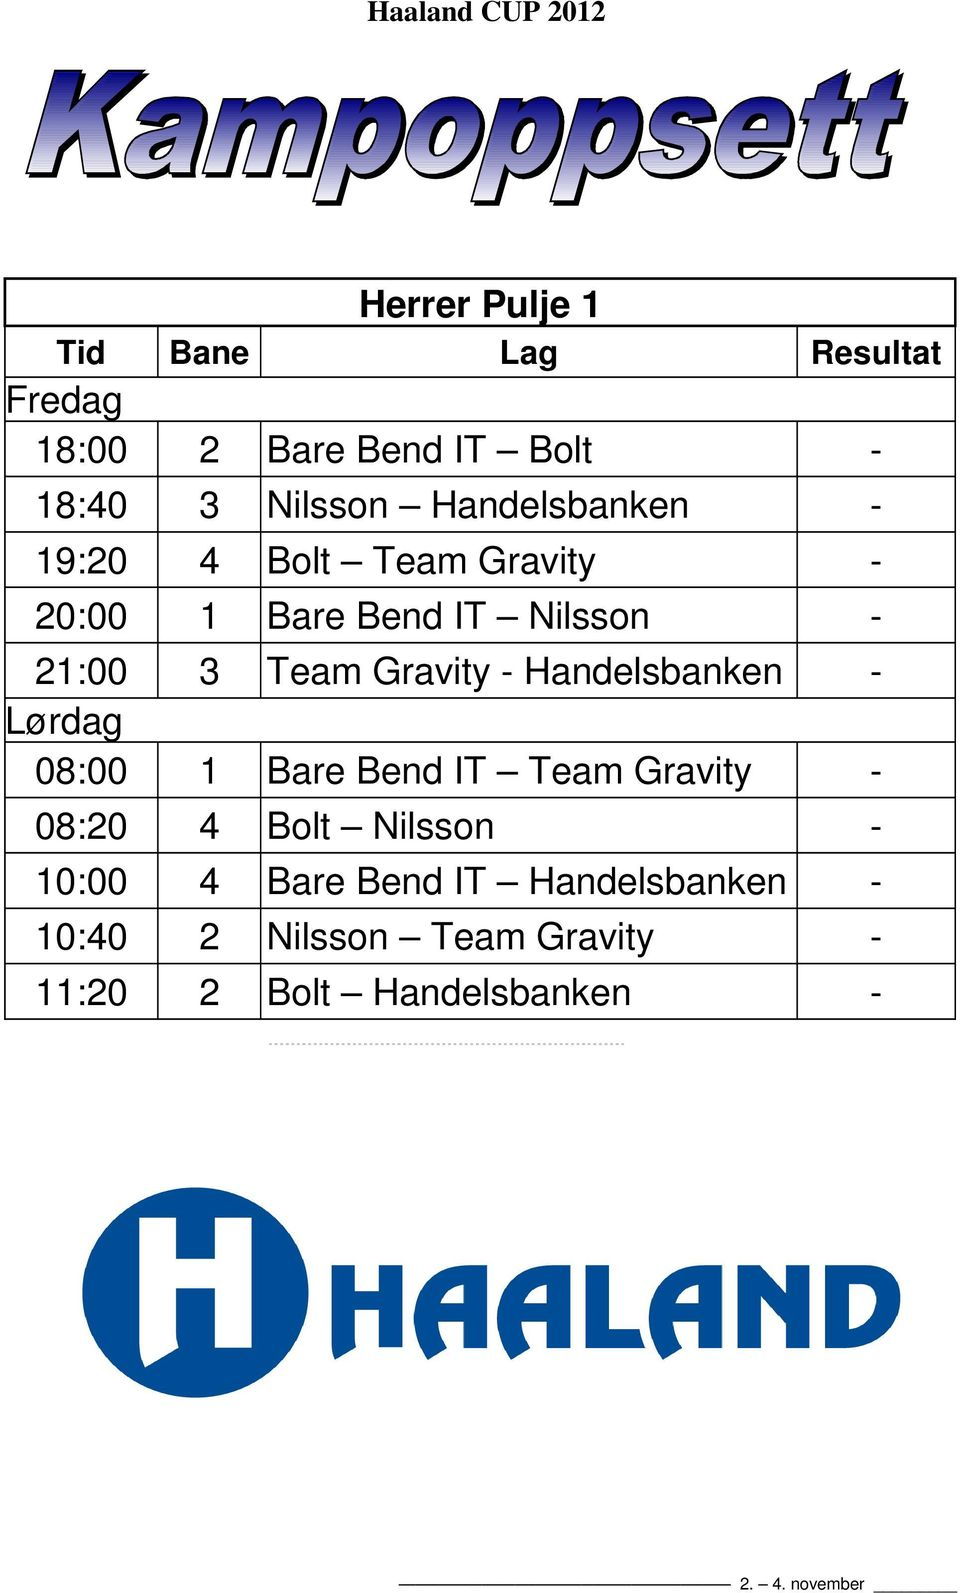 Handelsbanken - Lørdag 08:00 1 Bare Bend IT Team Gravity - 08:20 4 Bolt Nilsson -